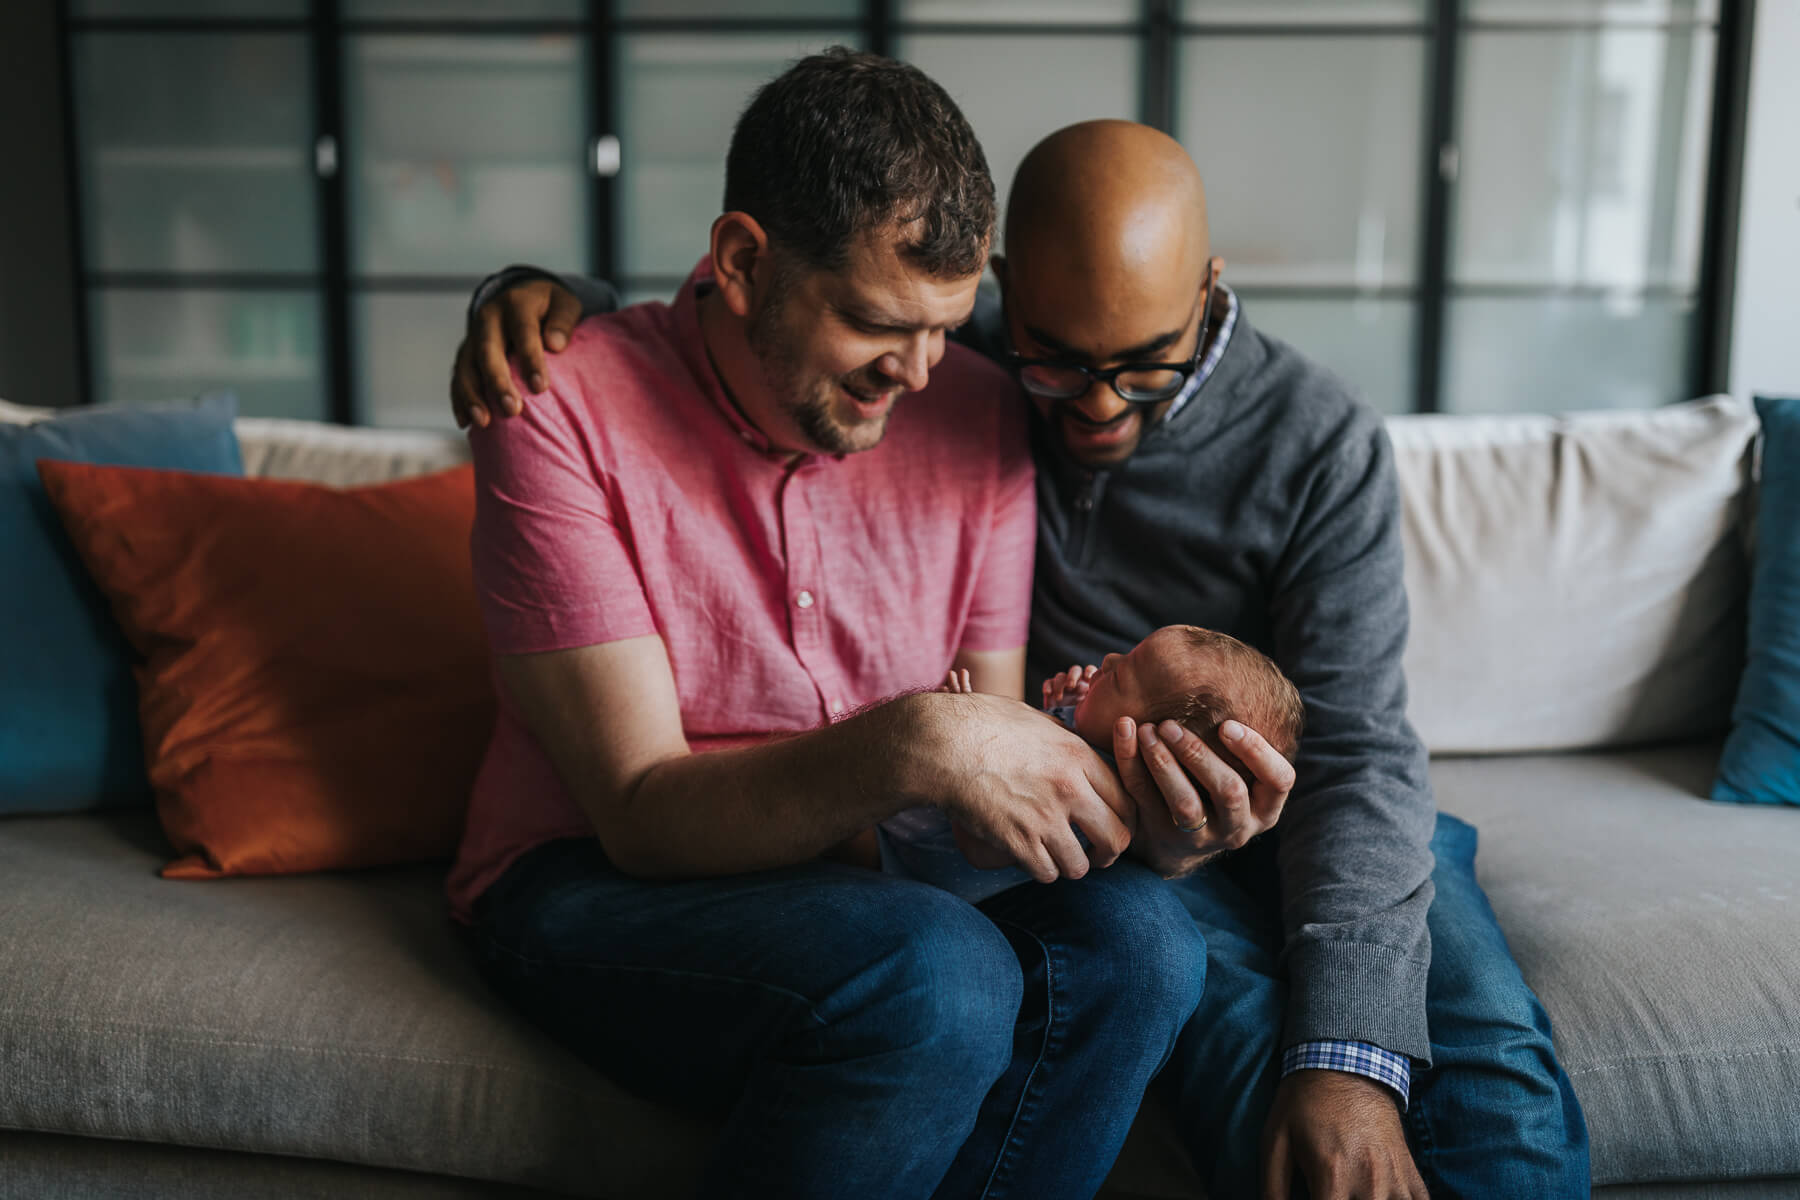 Gay couple sitting on couch in Kitchener with their baby daughter.